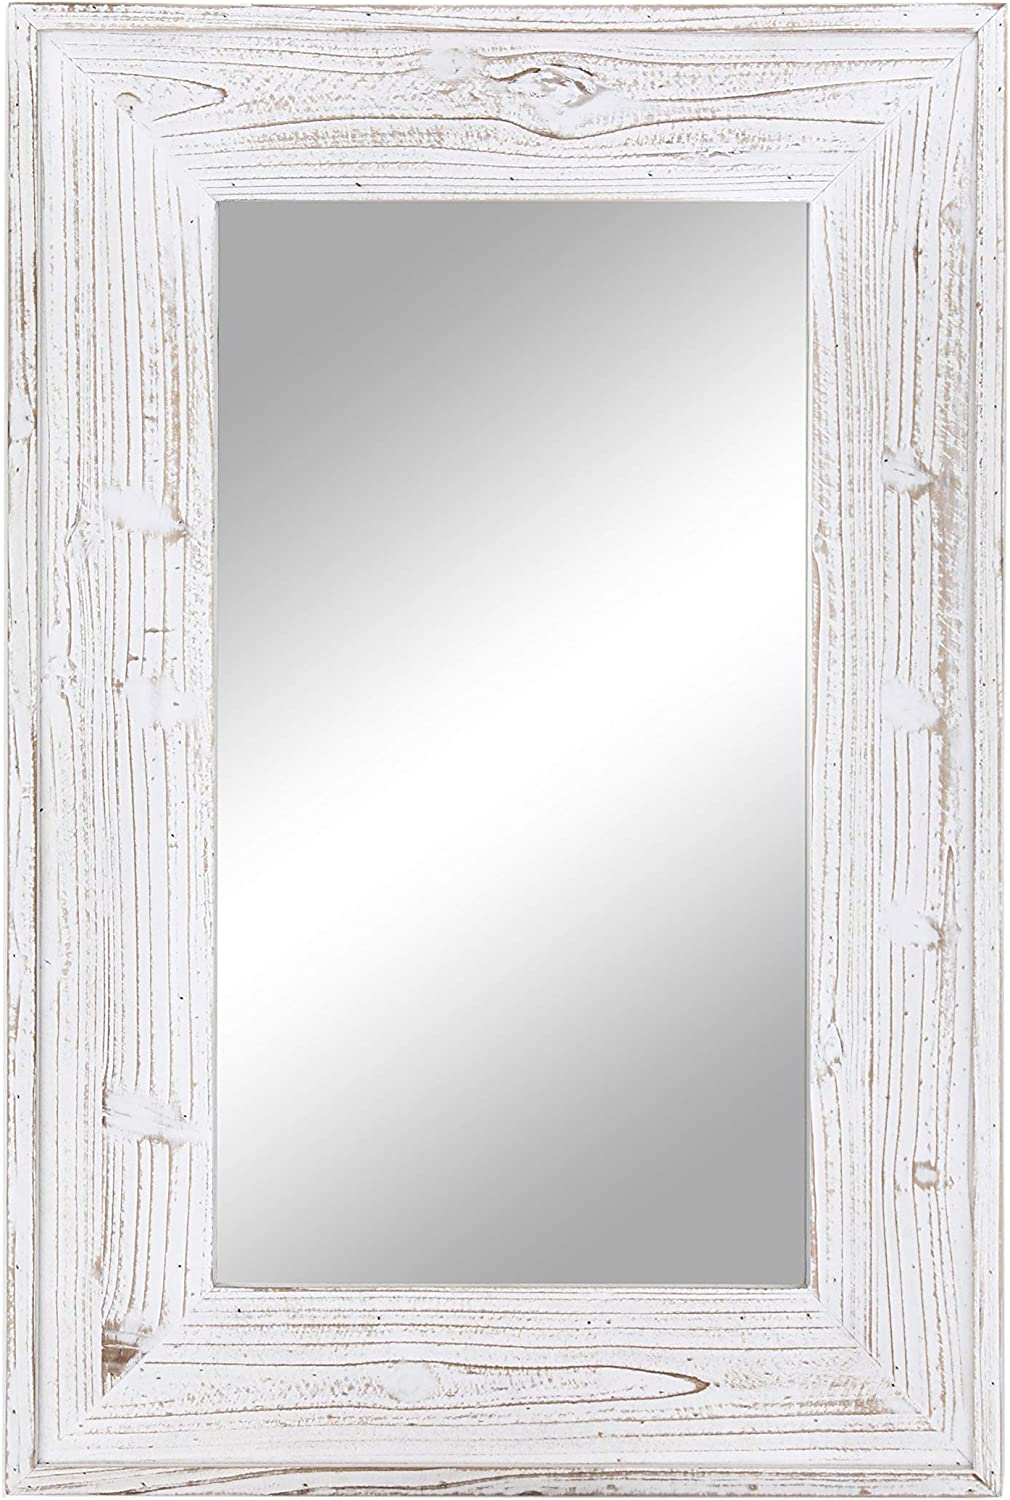 Emaison 36 x 24 inches Wall Mounted Decorative Mirror, Rustic Wood Framed Rectangular Hanging Mirror with 4 Hangers for Farmhouse Bathroom, Entryway, Bedroom Décor